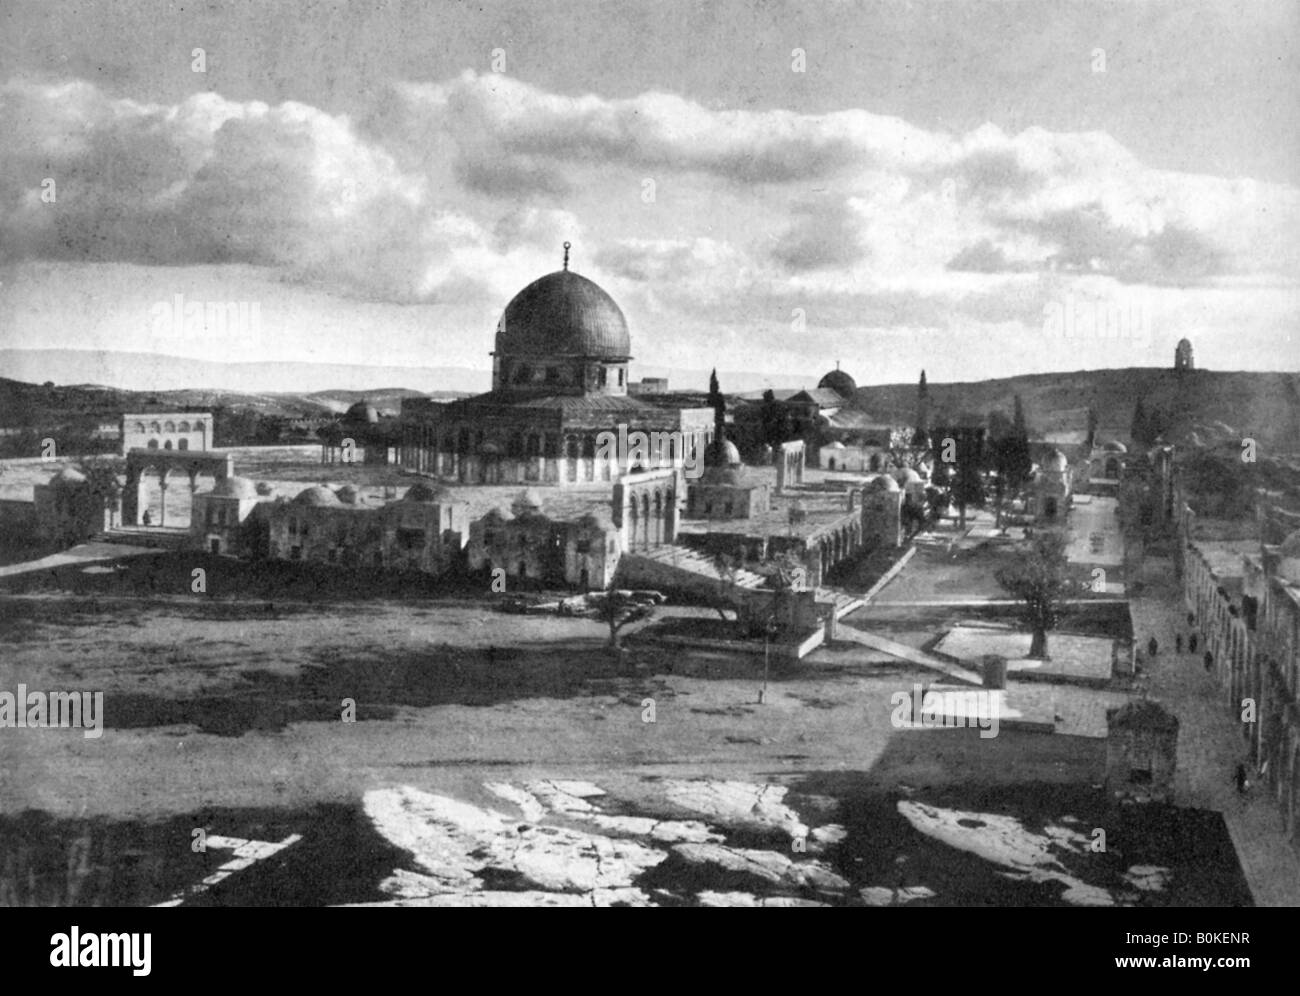 The Mosque of Omar on the site of the ancient temple, Bethlehem, Israel, 1926. - Stock Image